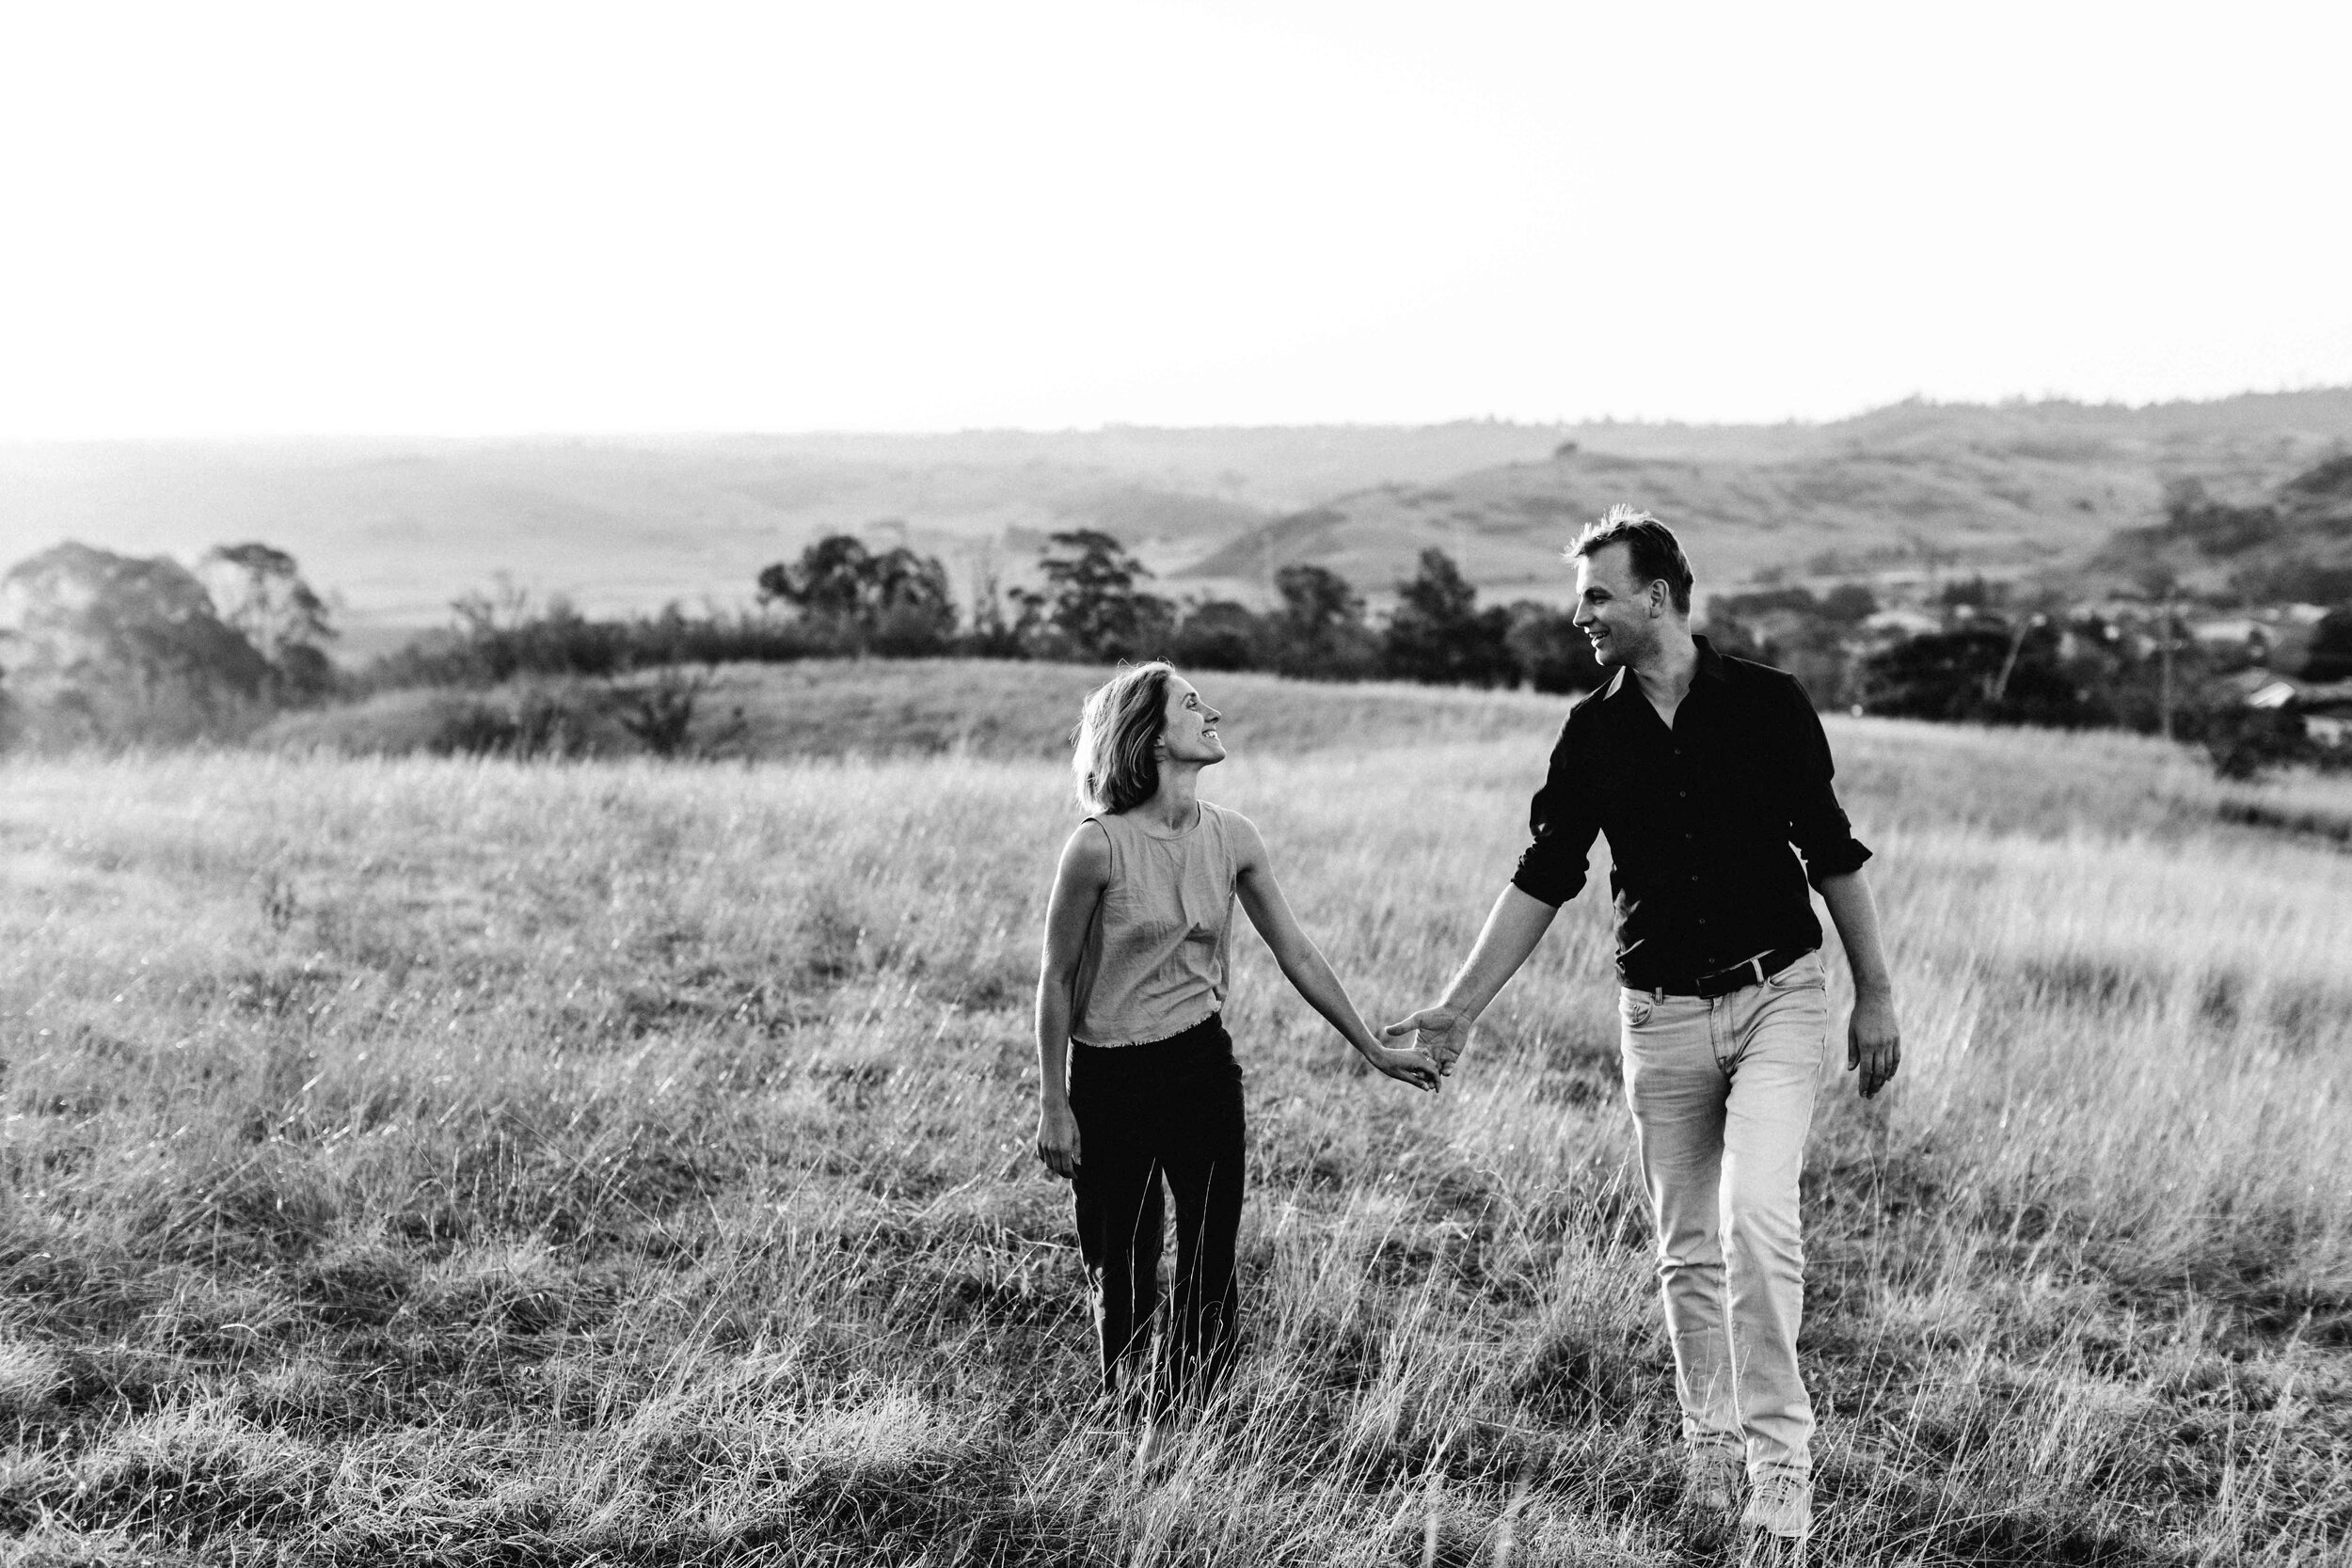 picton-engagement-photographer-wollondilly-david-esther-40.jpg